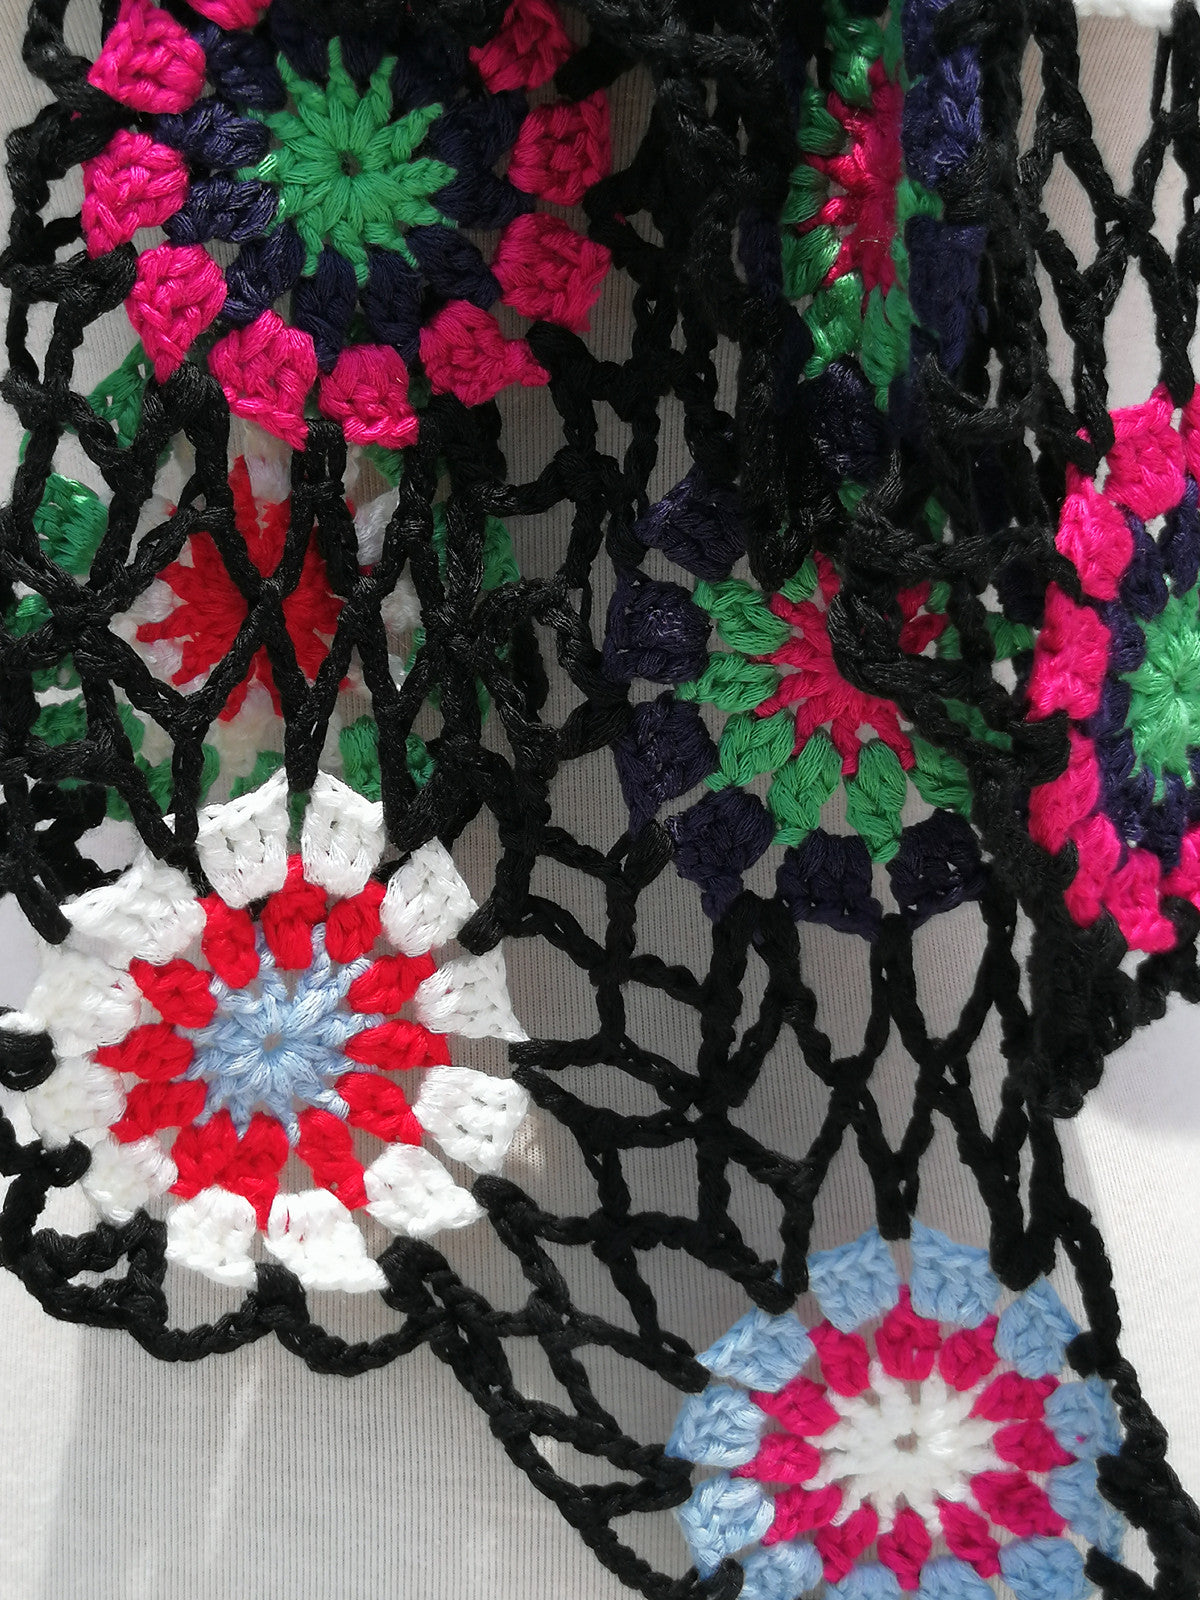 Granny Square Crochet Flower Scarf Women Boho Clothing